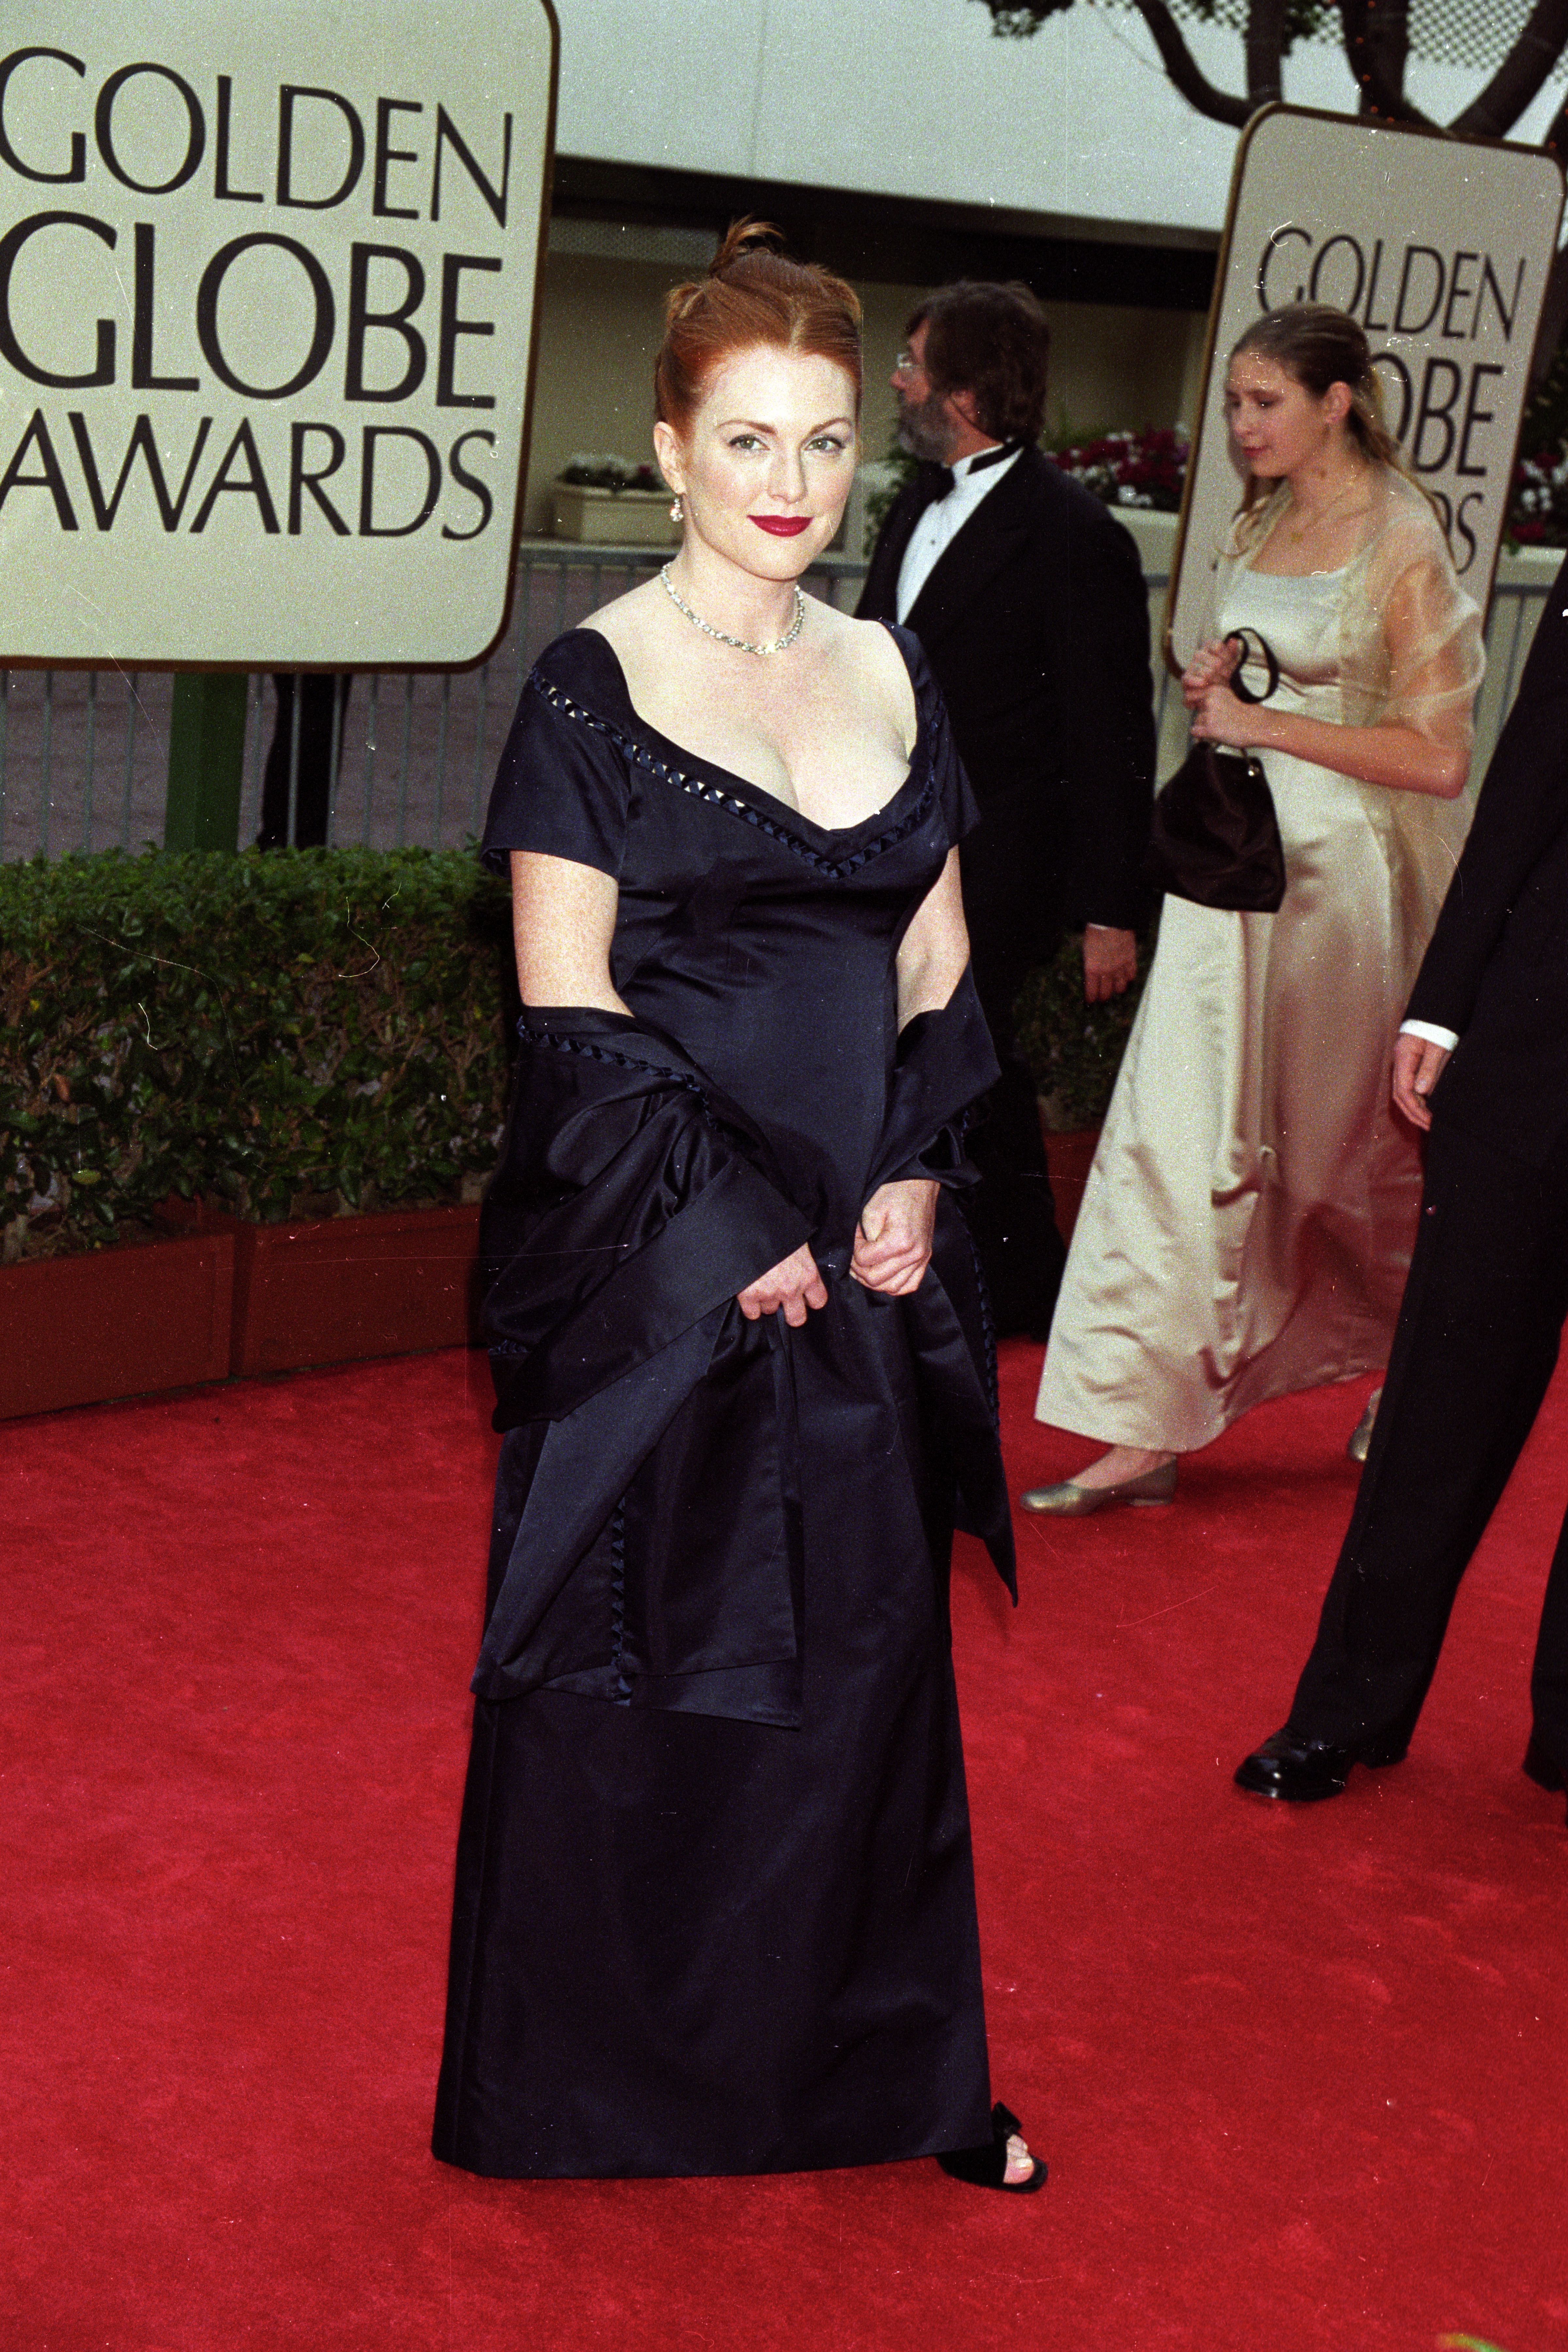 Julianne Moore arrives at the 55th annual Golden Globe Awards in Beverly Hills on Jan. 18, 1998.